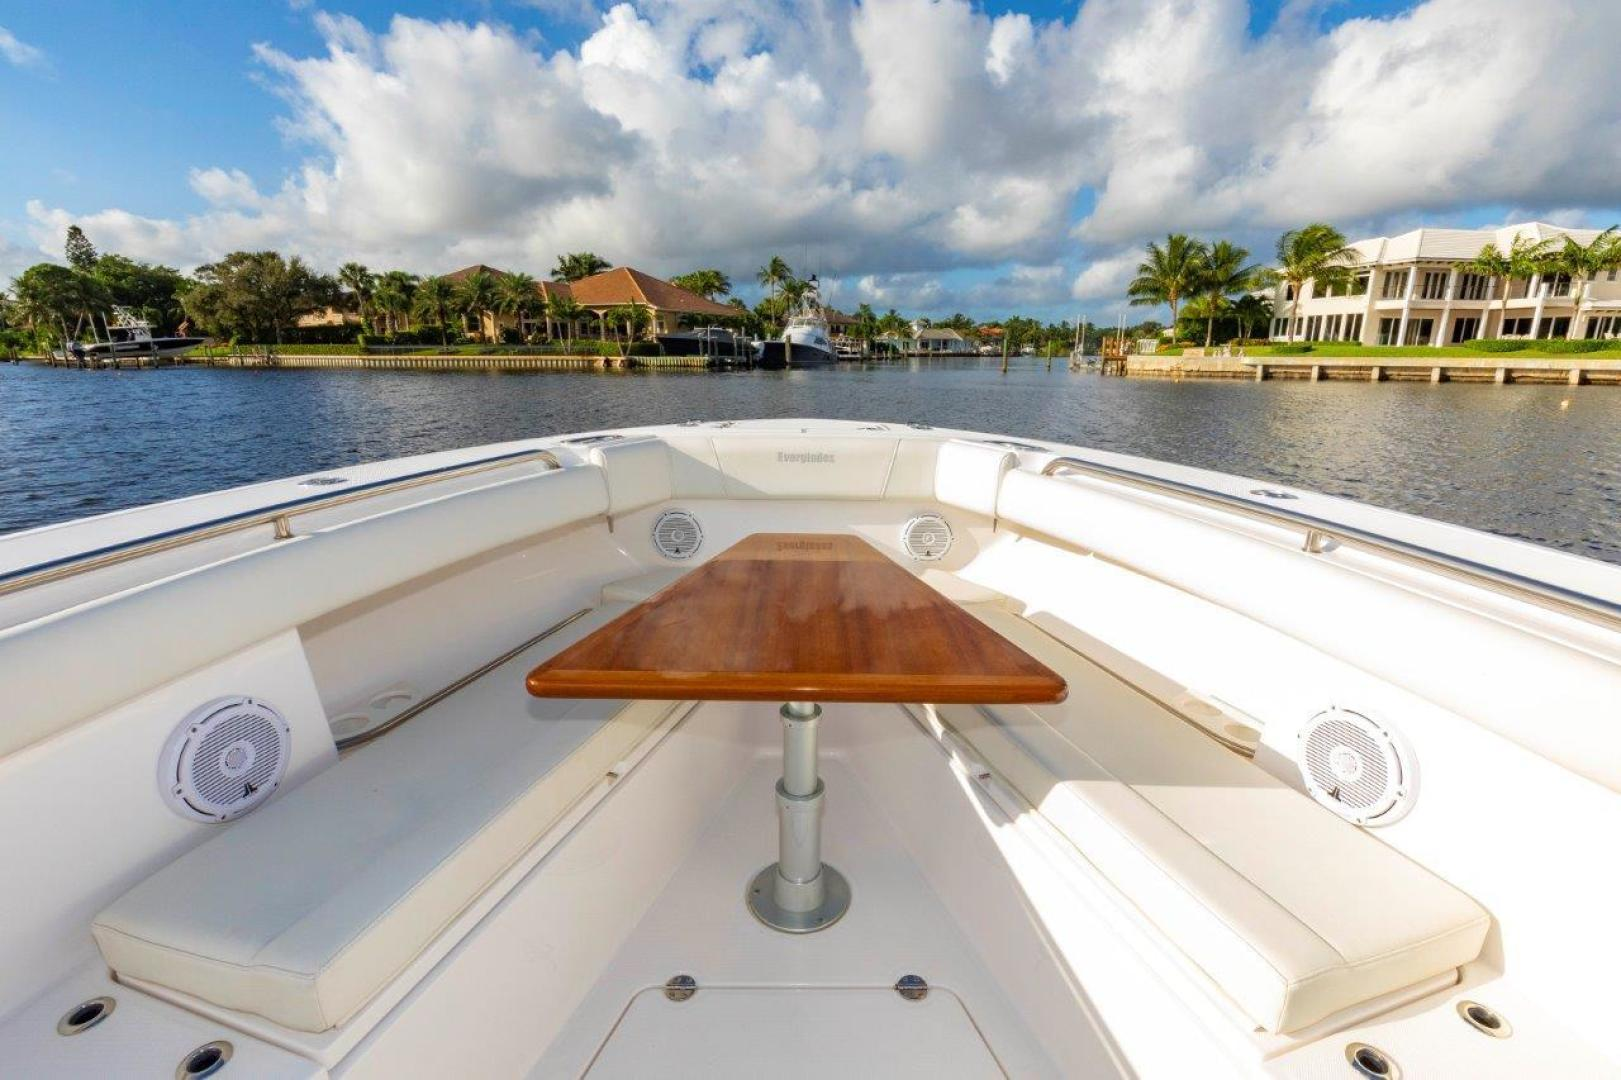 Everglades-435 Center Console 2019-Bahama Papa Palm Beach Gardens-Florida-United States-Forward Seating with Table-1570503 | Thumbnail